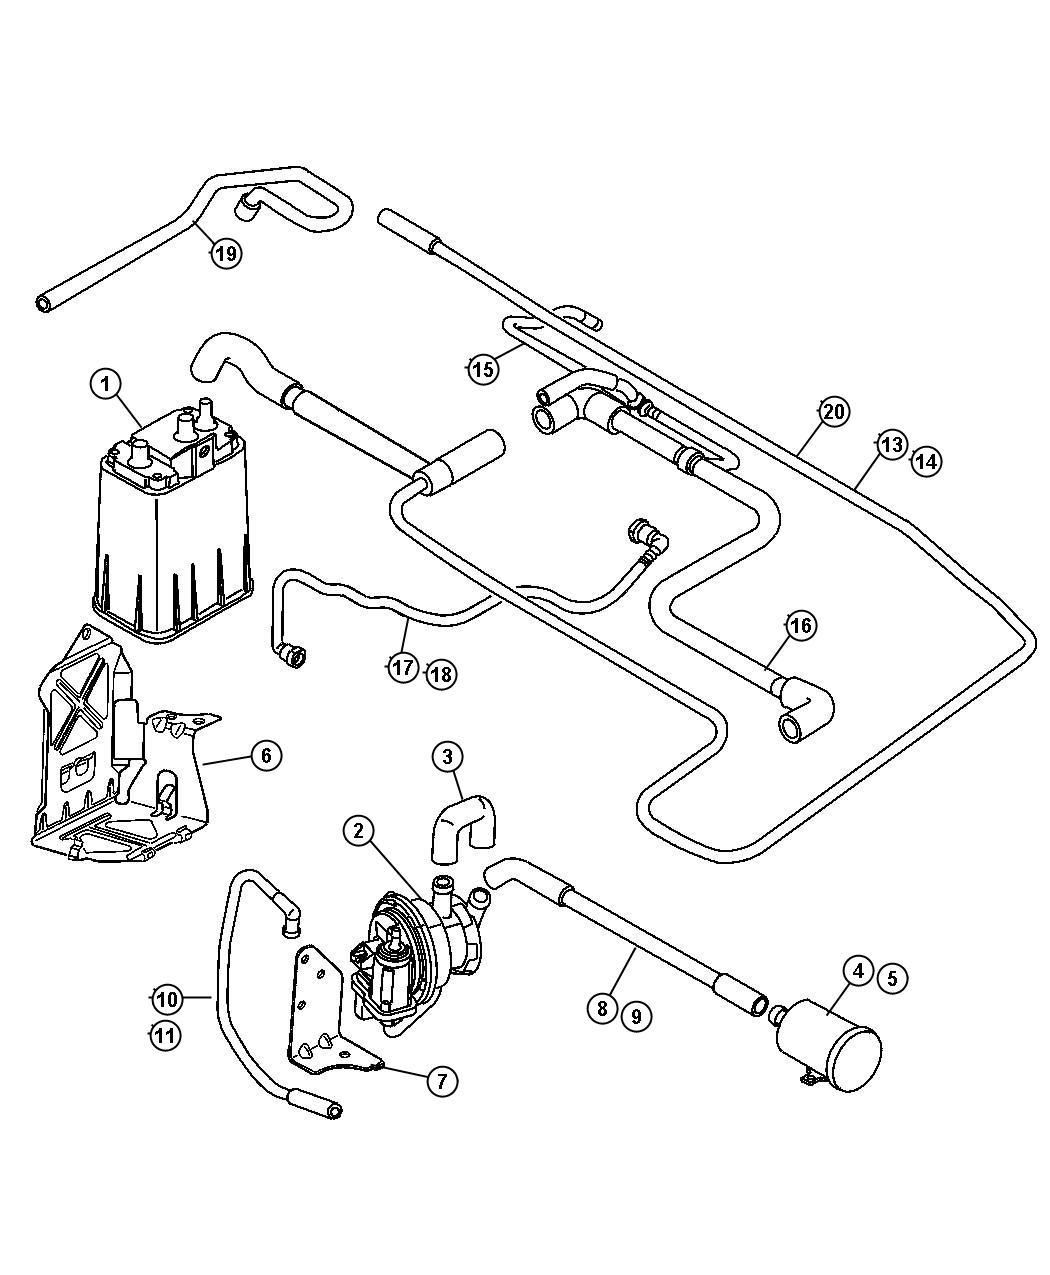 Pt Cruiser Gas Tank Diagram Trusted Wiring Diagrams 05 Enthusiast U2022 Roof